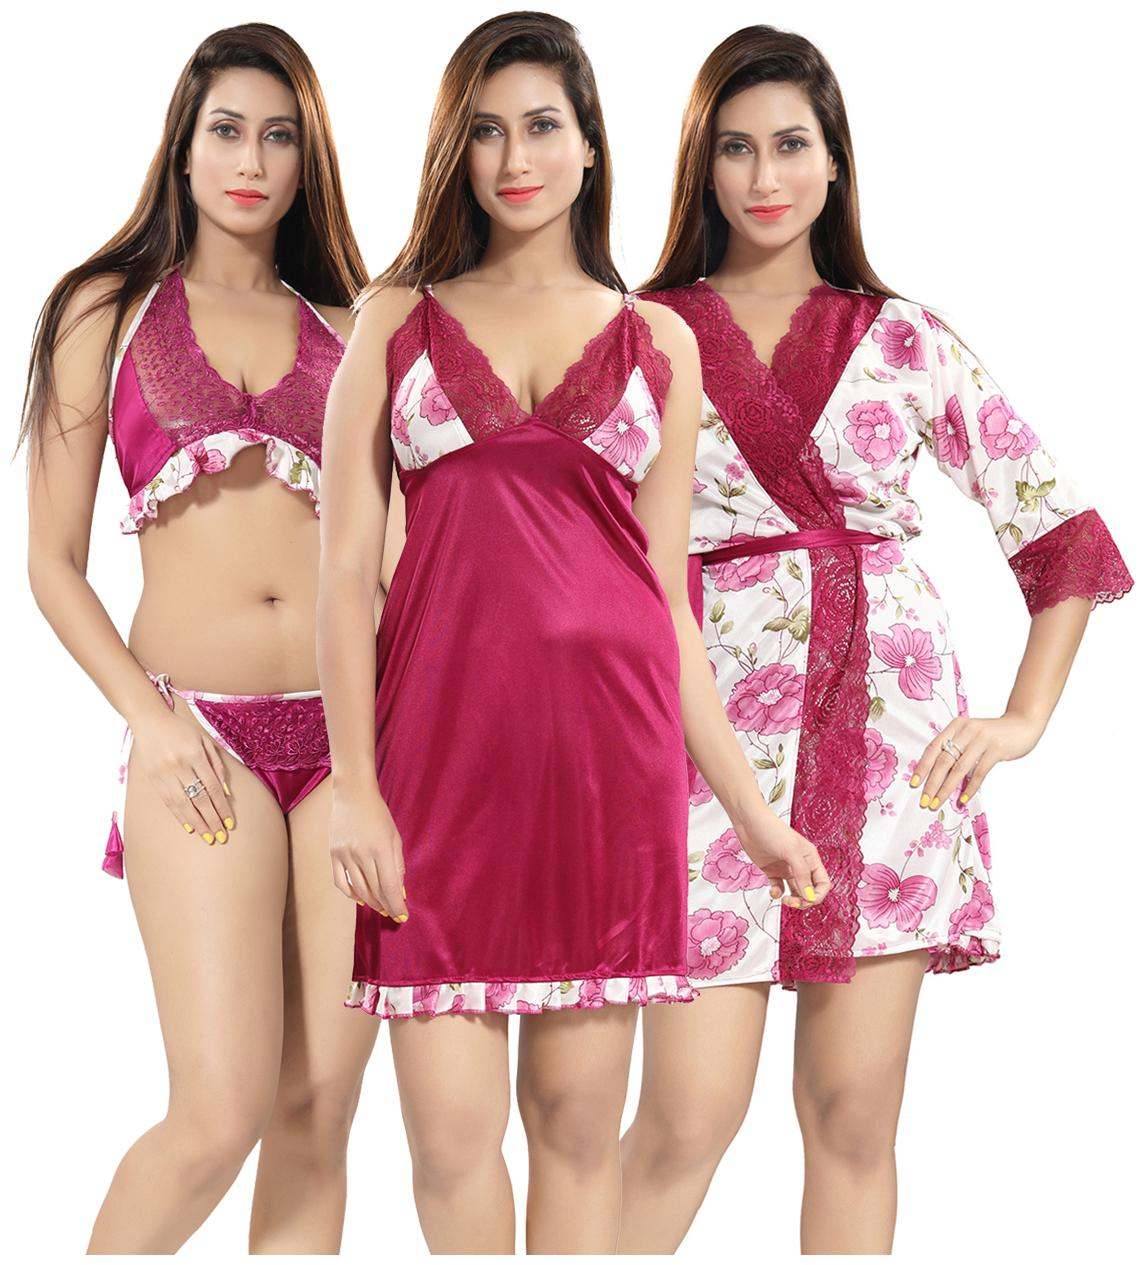 https://assetscdn1.paytm.com/images/catalog/product/A/AP/APPBE-YOU-WOMENBE-Y2313125FE39D8/1563011049189_0..jpg